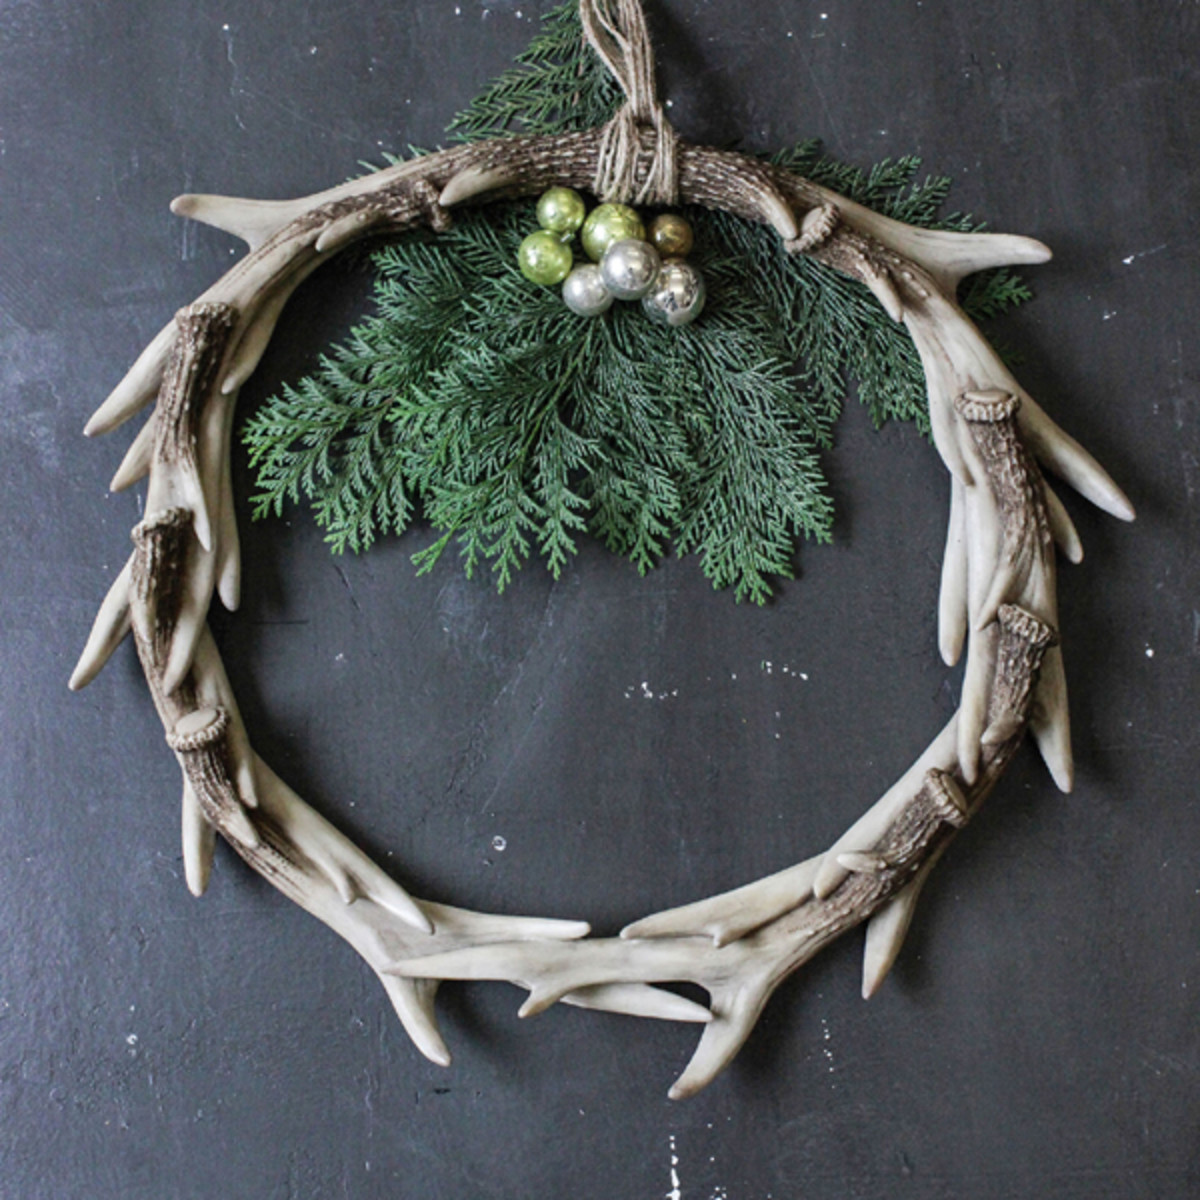 Simple and classic antler holiday decor!